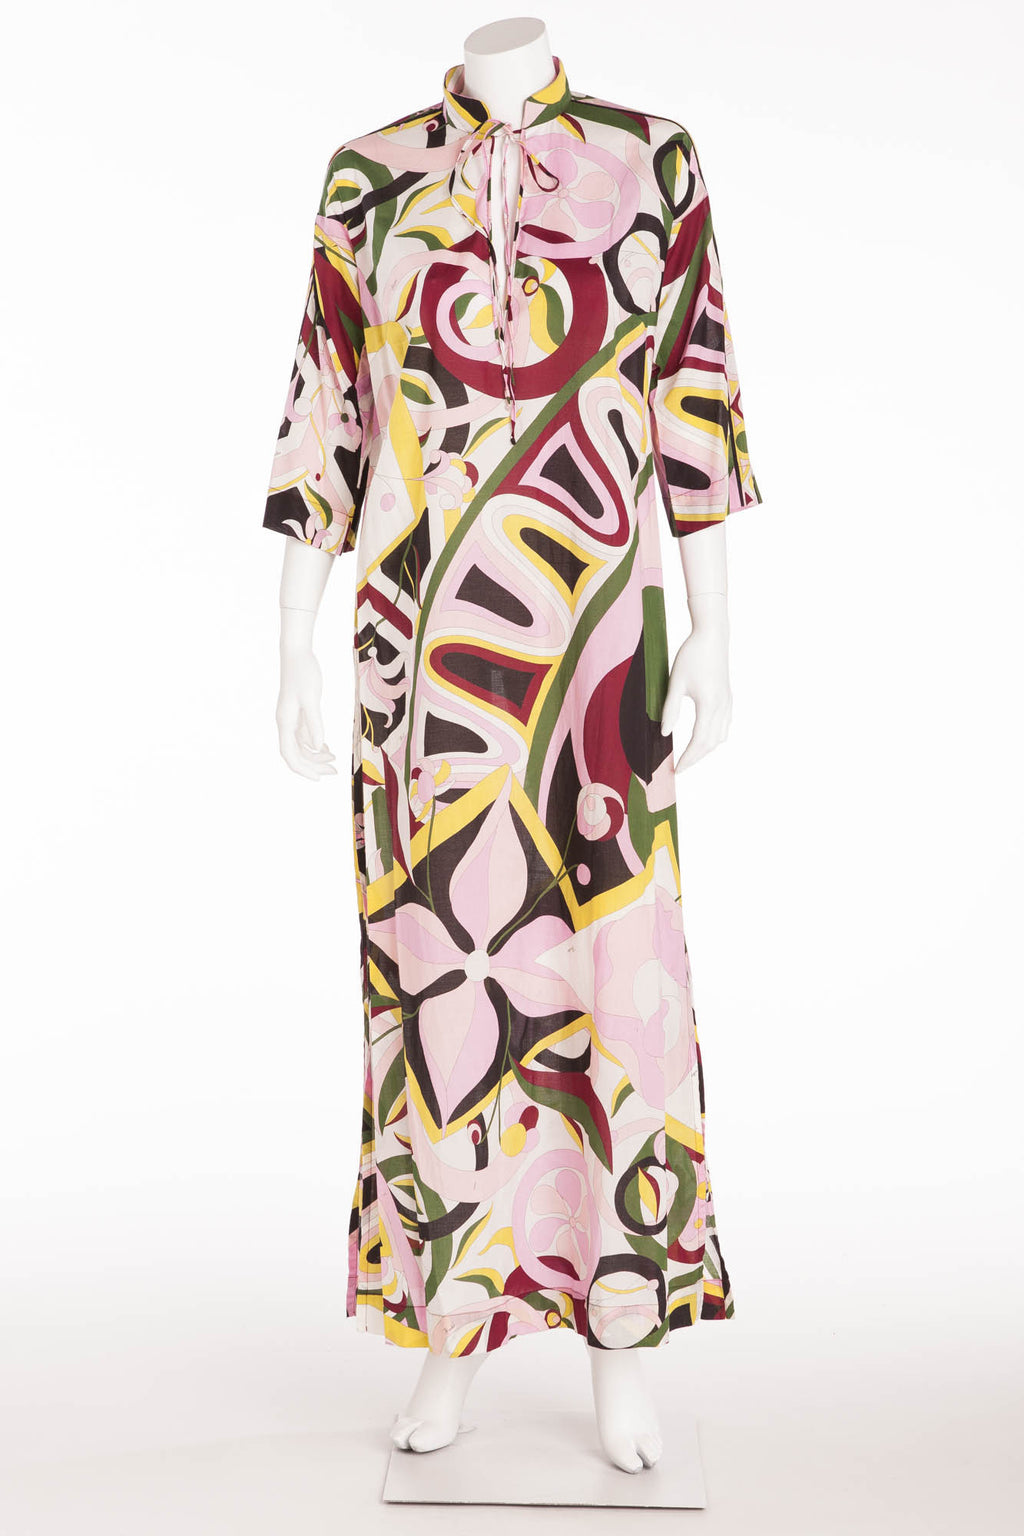 Emilio Pucci - 3/4 Sleeve Multicolor Beach Dress - IT 42